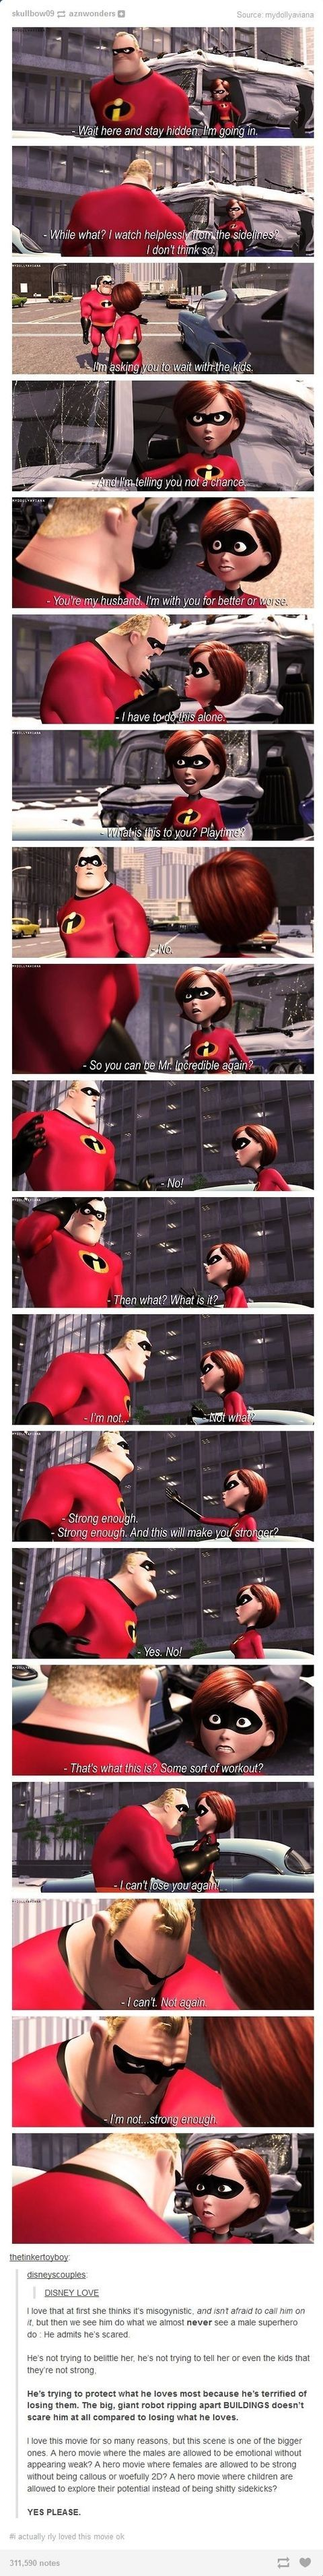 Love in the Incredibles. pardon the language